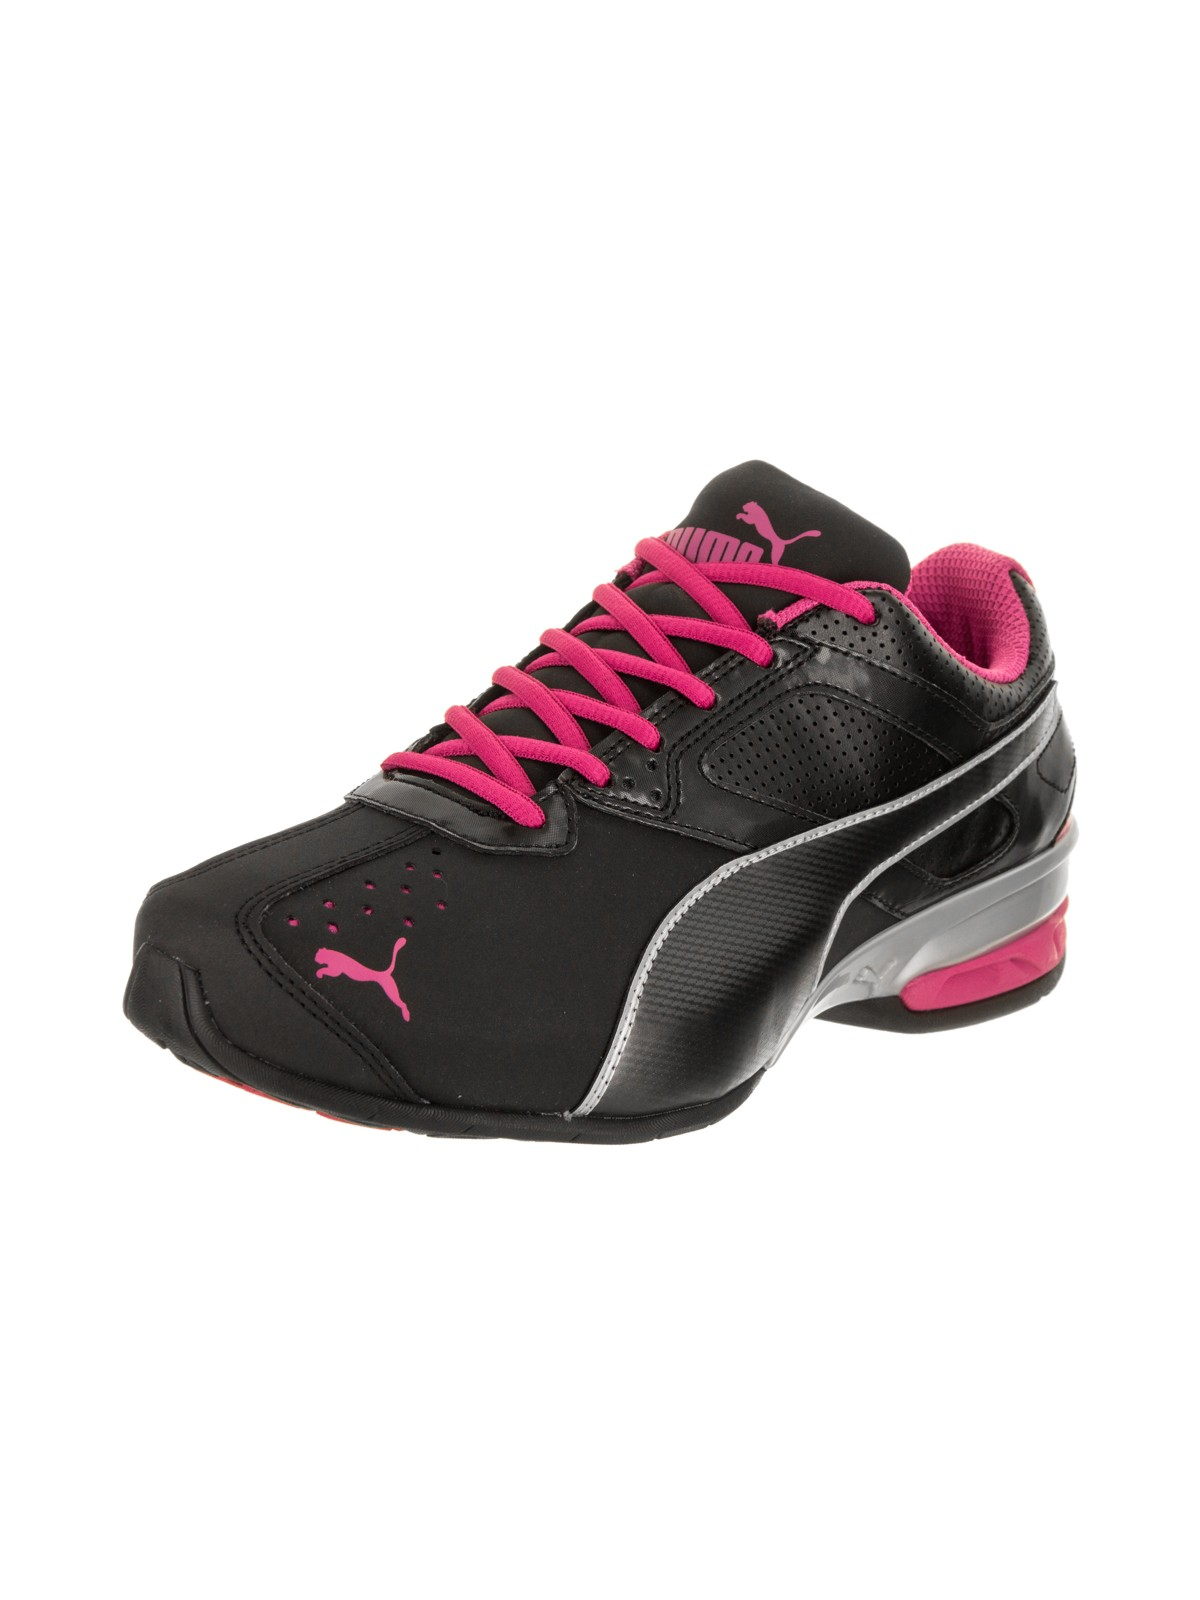 Puma Women's Tazon 6 FM - Wide Fit Running Shoe